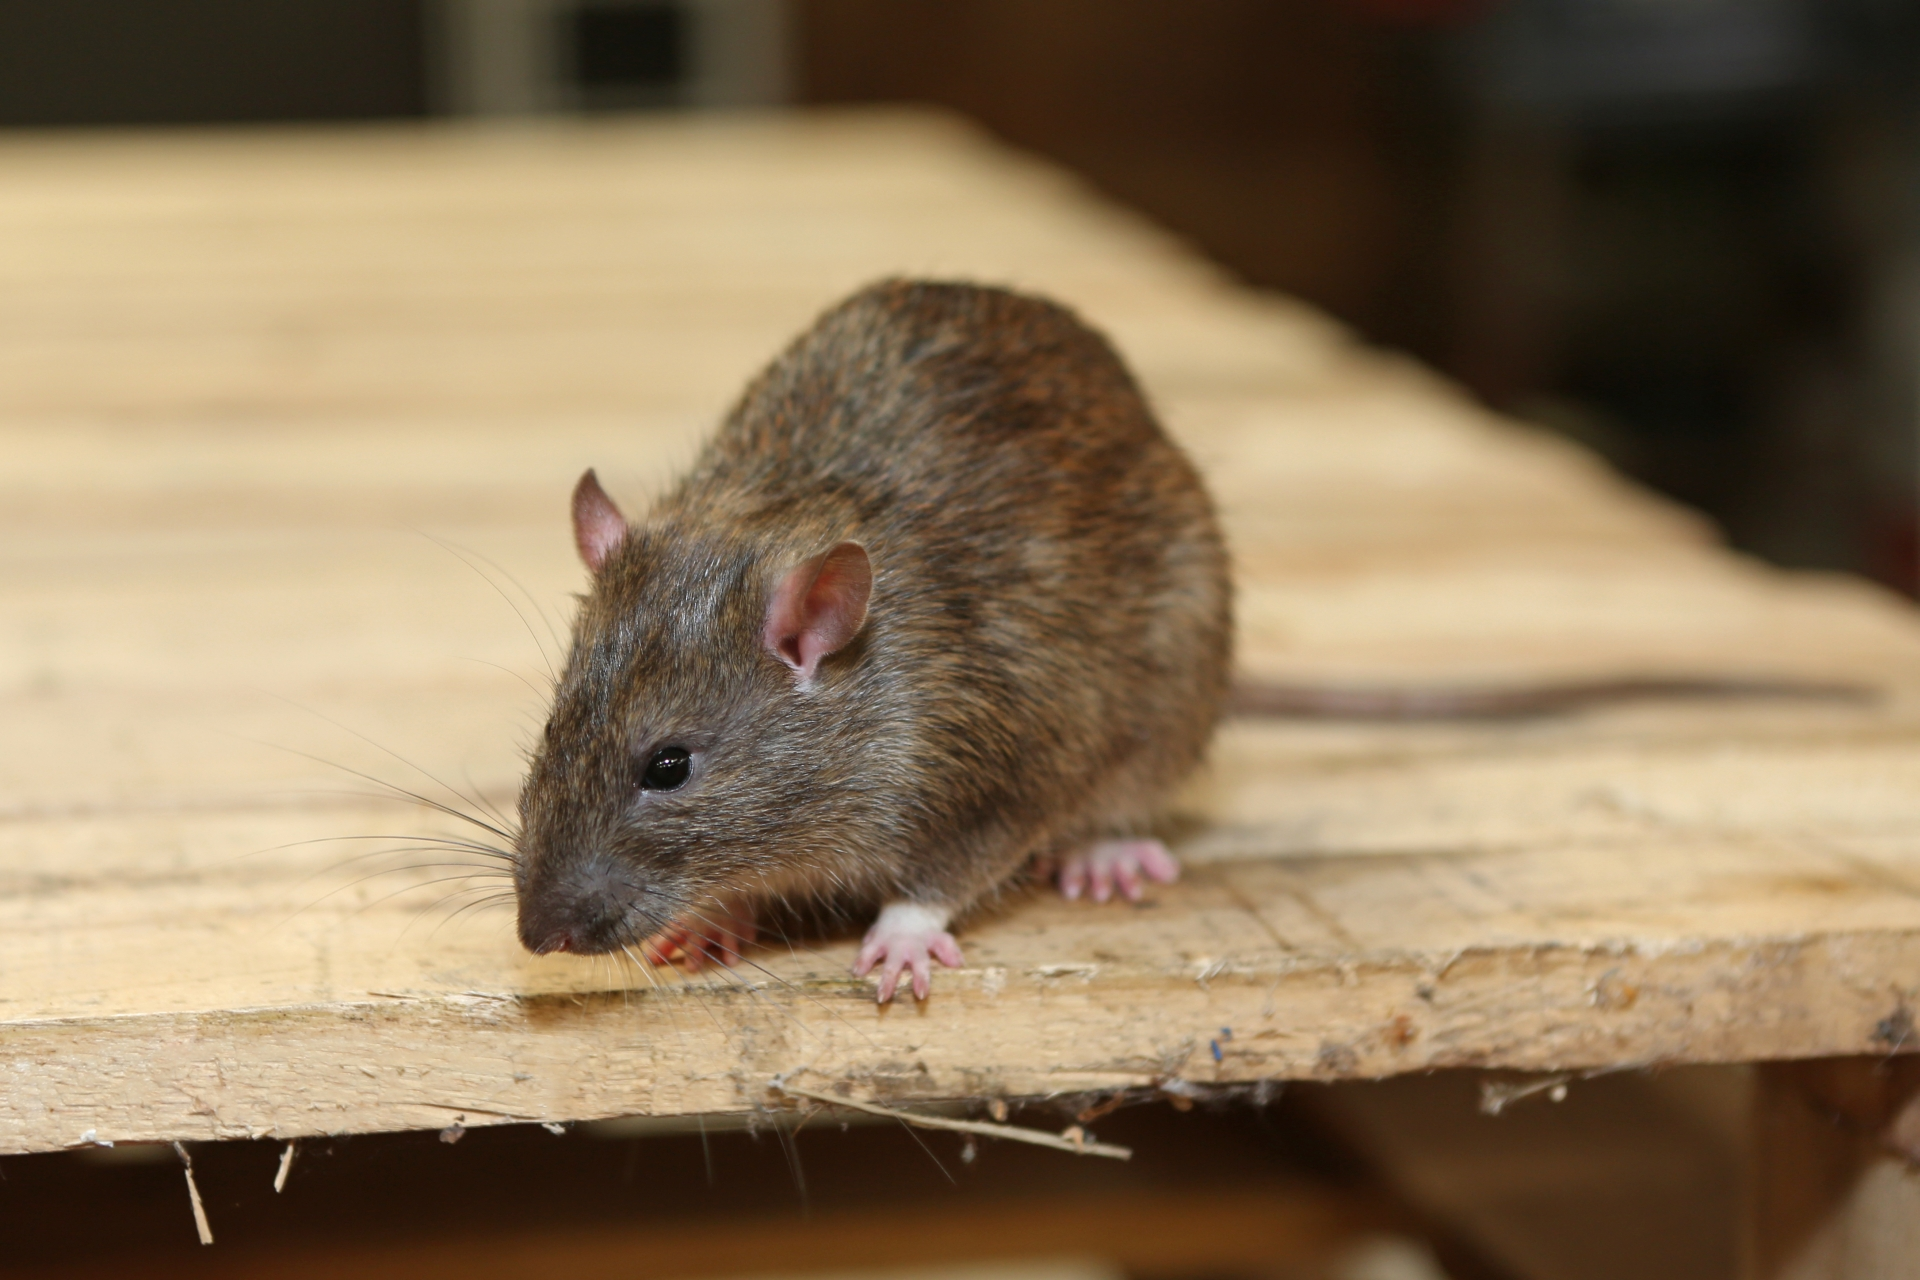 Rat extermination, Pest Control in Finchley Central, N3. Call Now 020 8166 9746